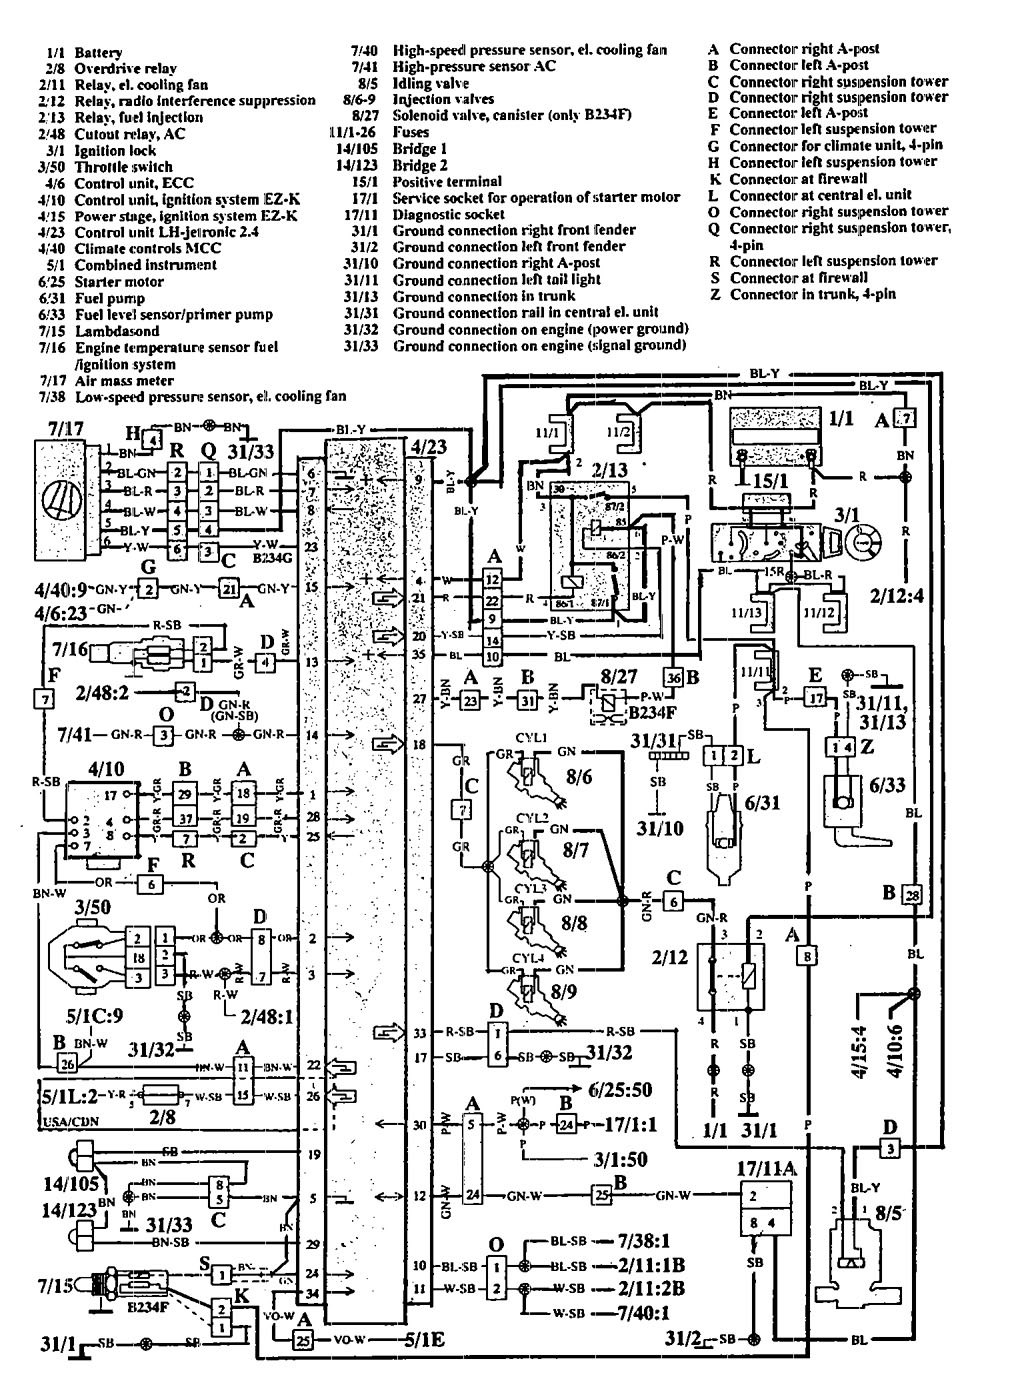 modern volvo 850 radio wiring diagram composition best images for rh oursweetbakeshop info 1992 volvo 960 [ 1024 x 1373 Pixel ]